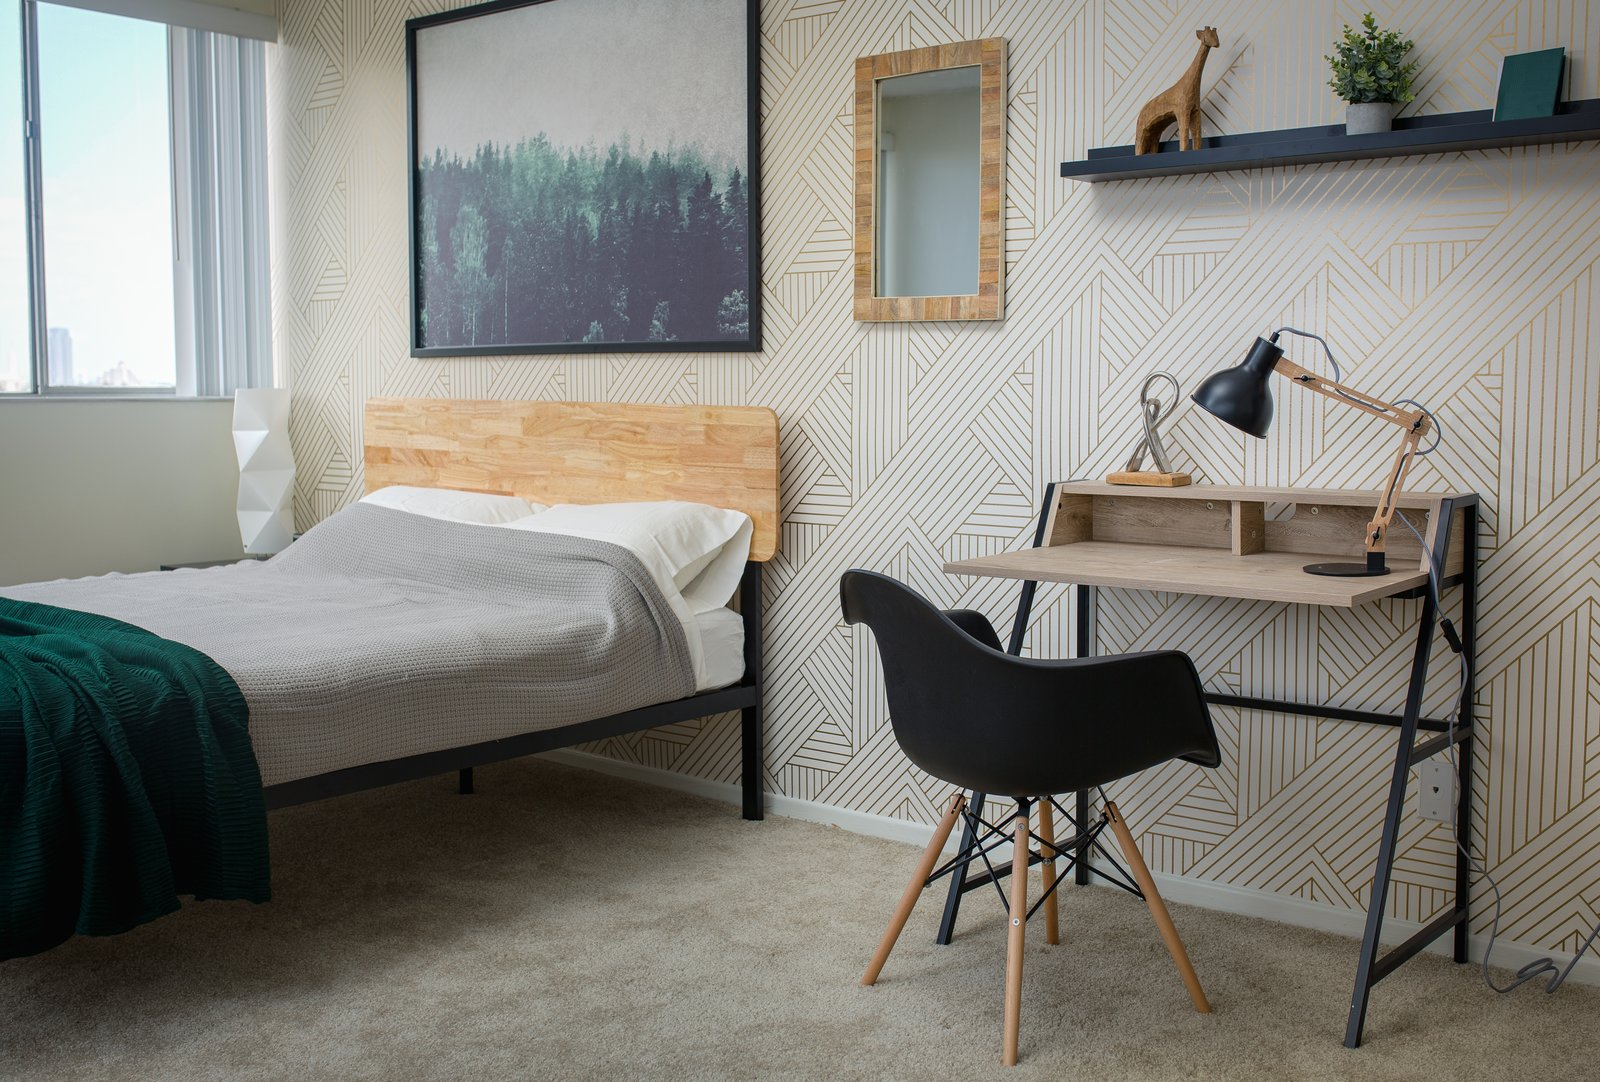 Wilshire Studio Apartment By Metropolia Modern Home In Los Angeles On Dwell